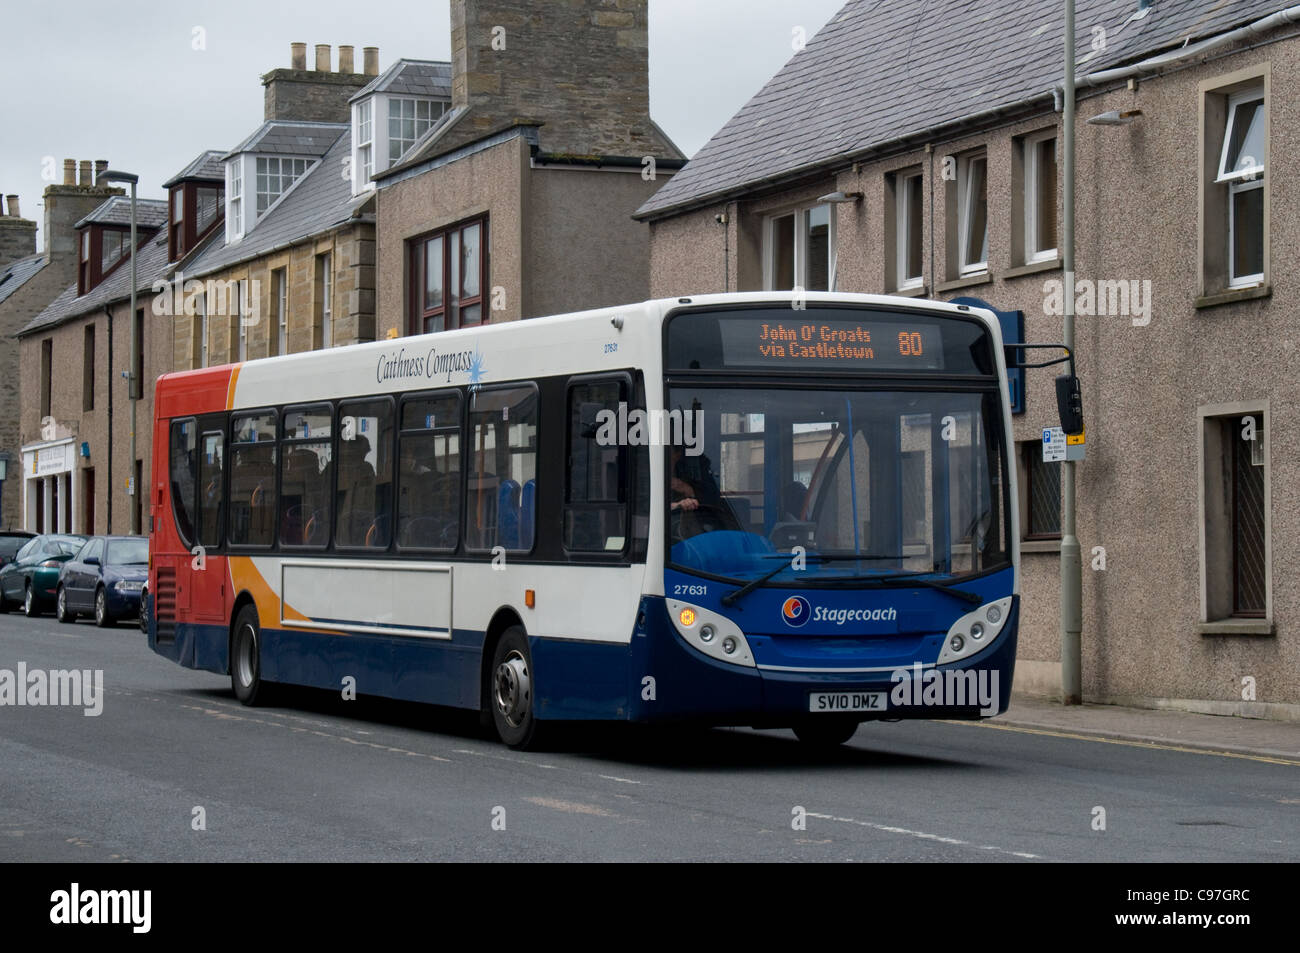 An Alexander Dennis Enviro 300 of Stagecoach passes through the streets of Thurso on its way to John O'Groats - Stock Image